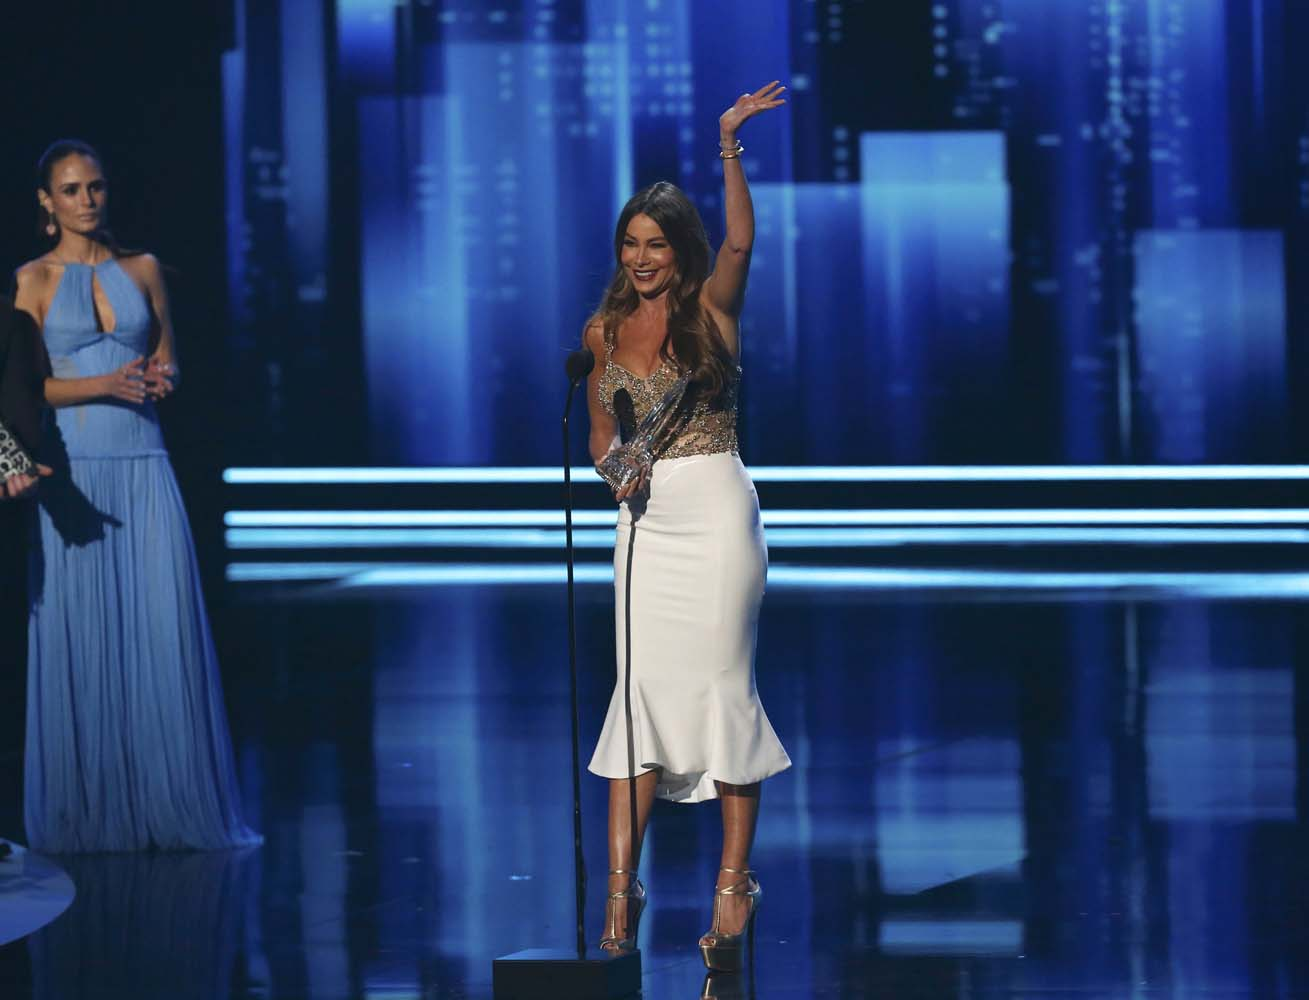 Sofia Vergara accepts the award for Favorite TV Comedy Actress at the People's Choice Awards 2017 in Los Angeles, California, U.S., January 18, 2017.  REUTERS/Mario Anzuoni